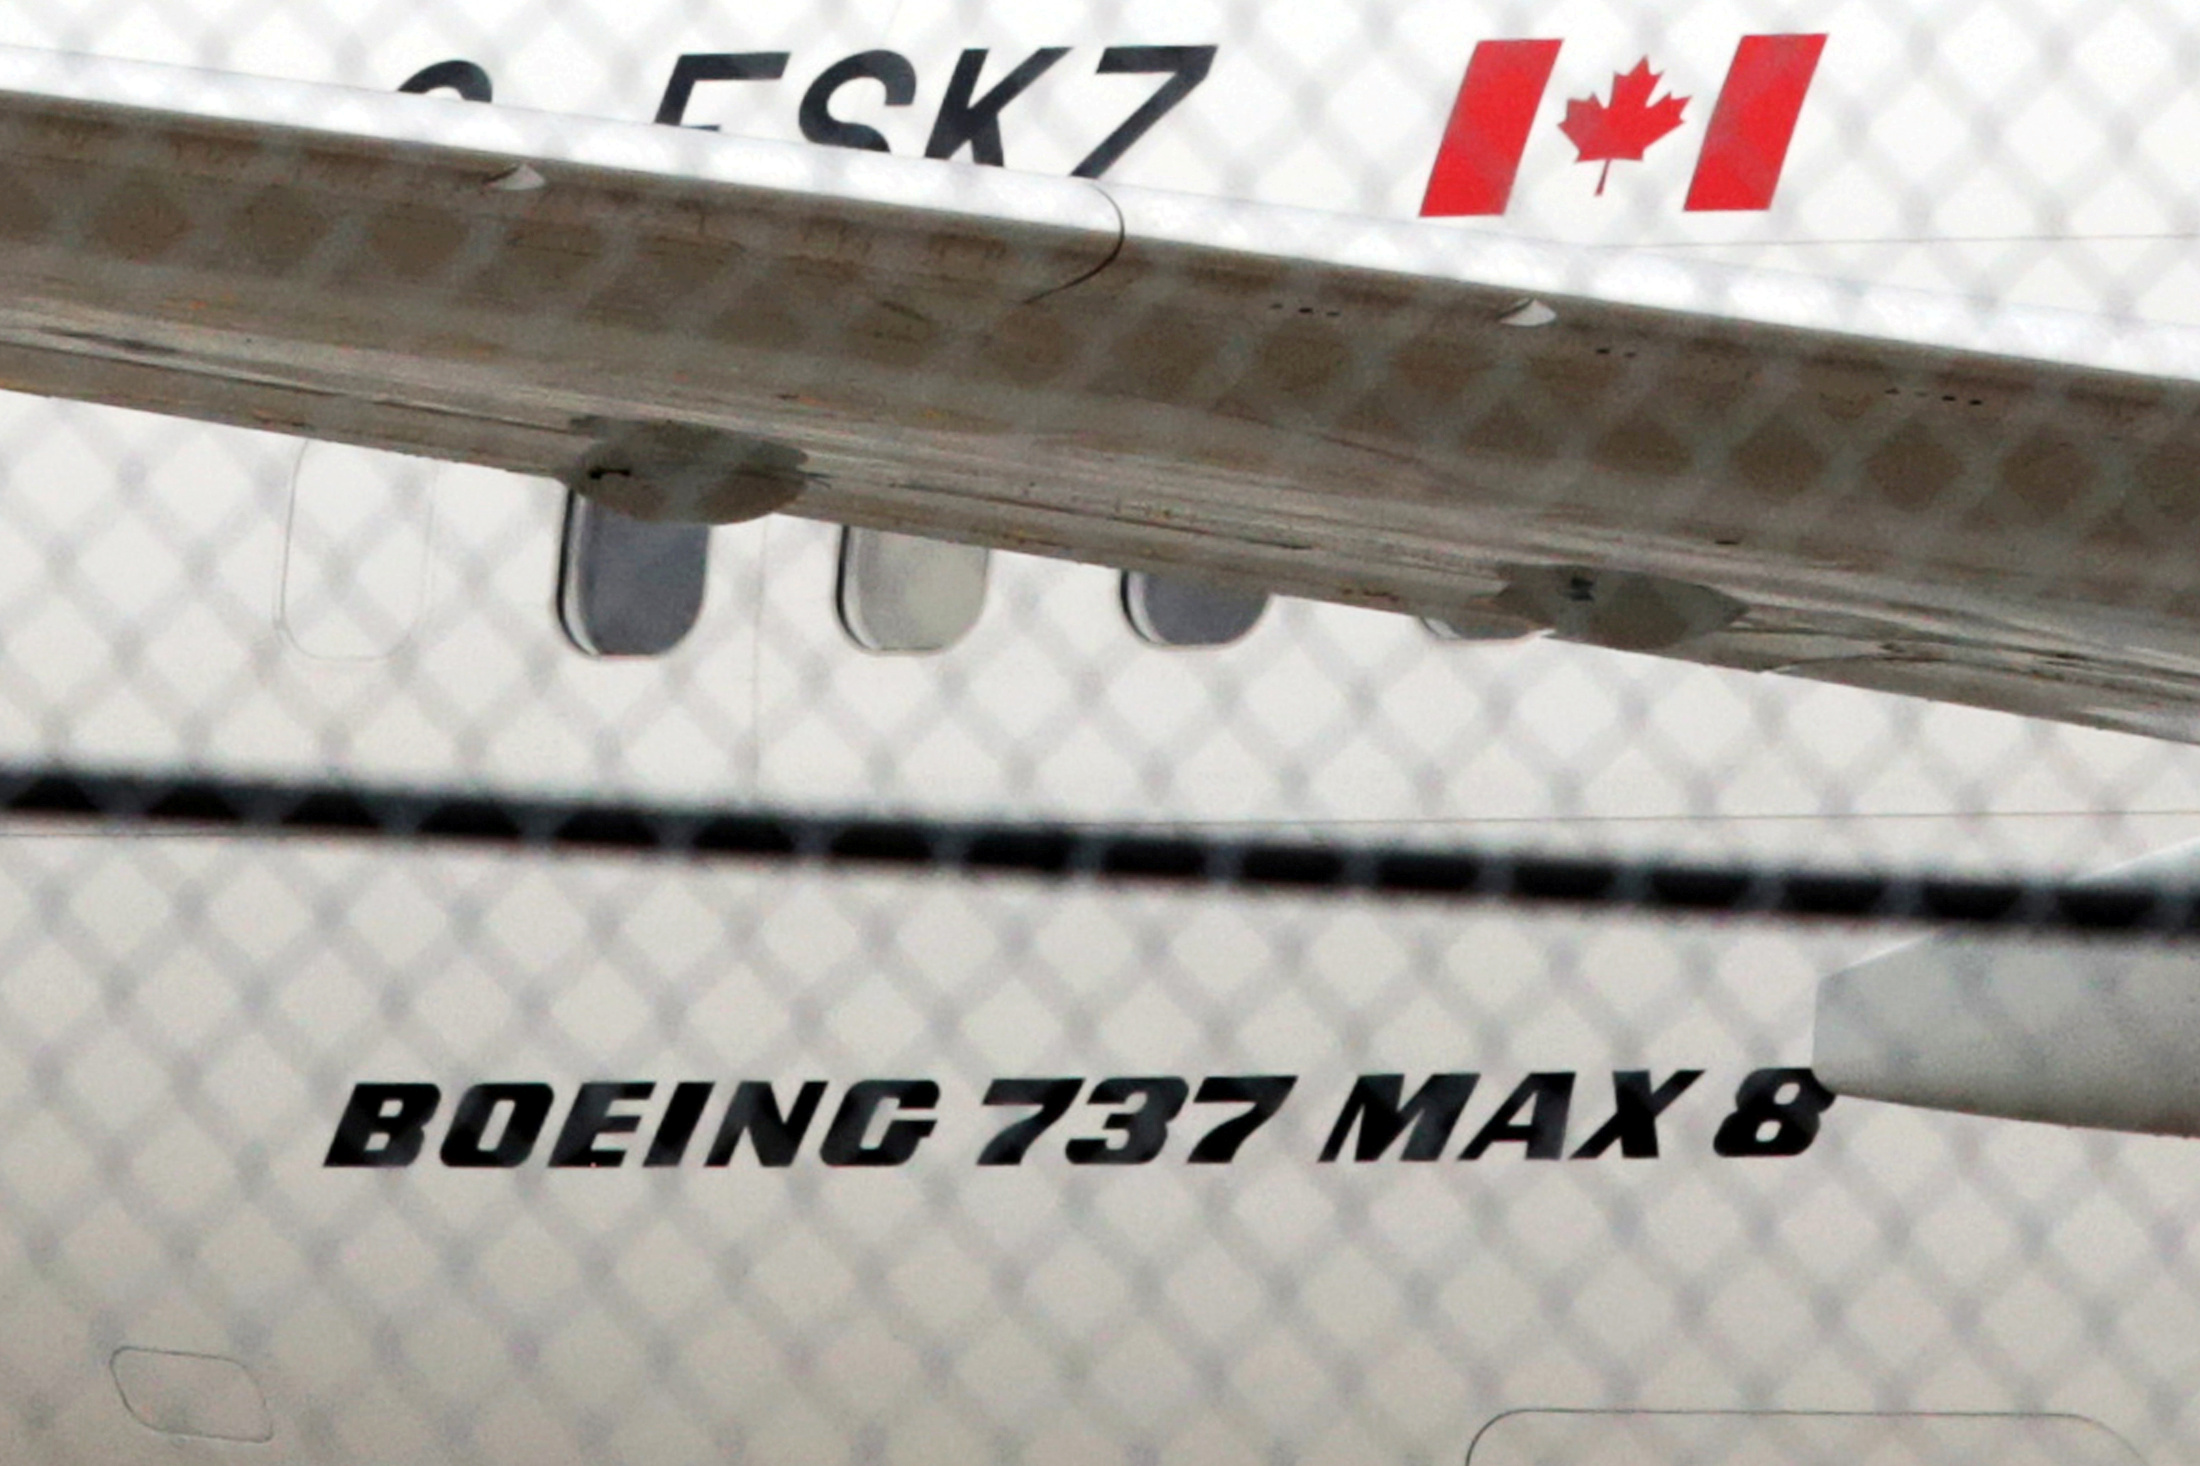 Fallows: Implications of the Boeing 737 Max Crashes - The